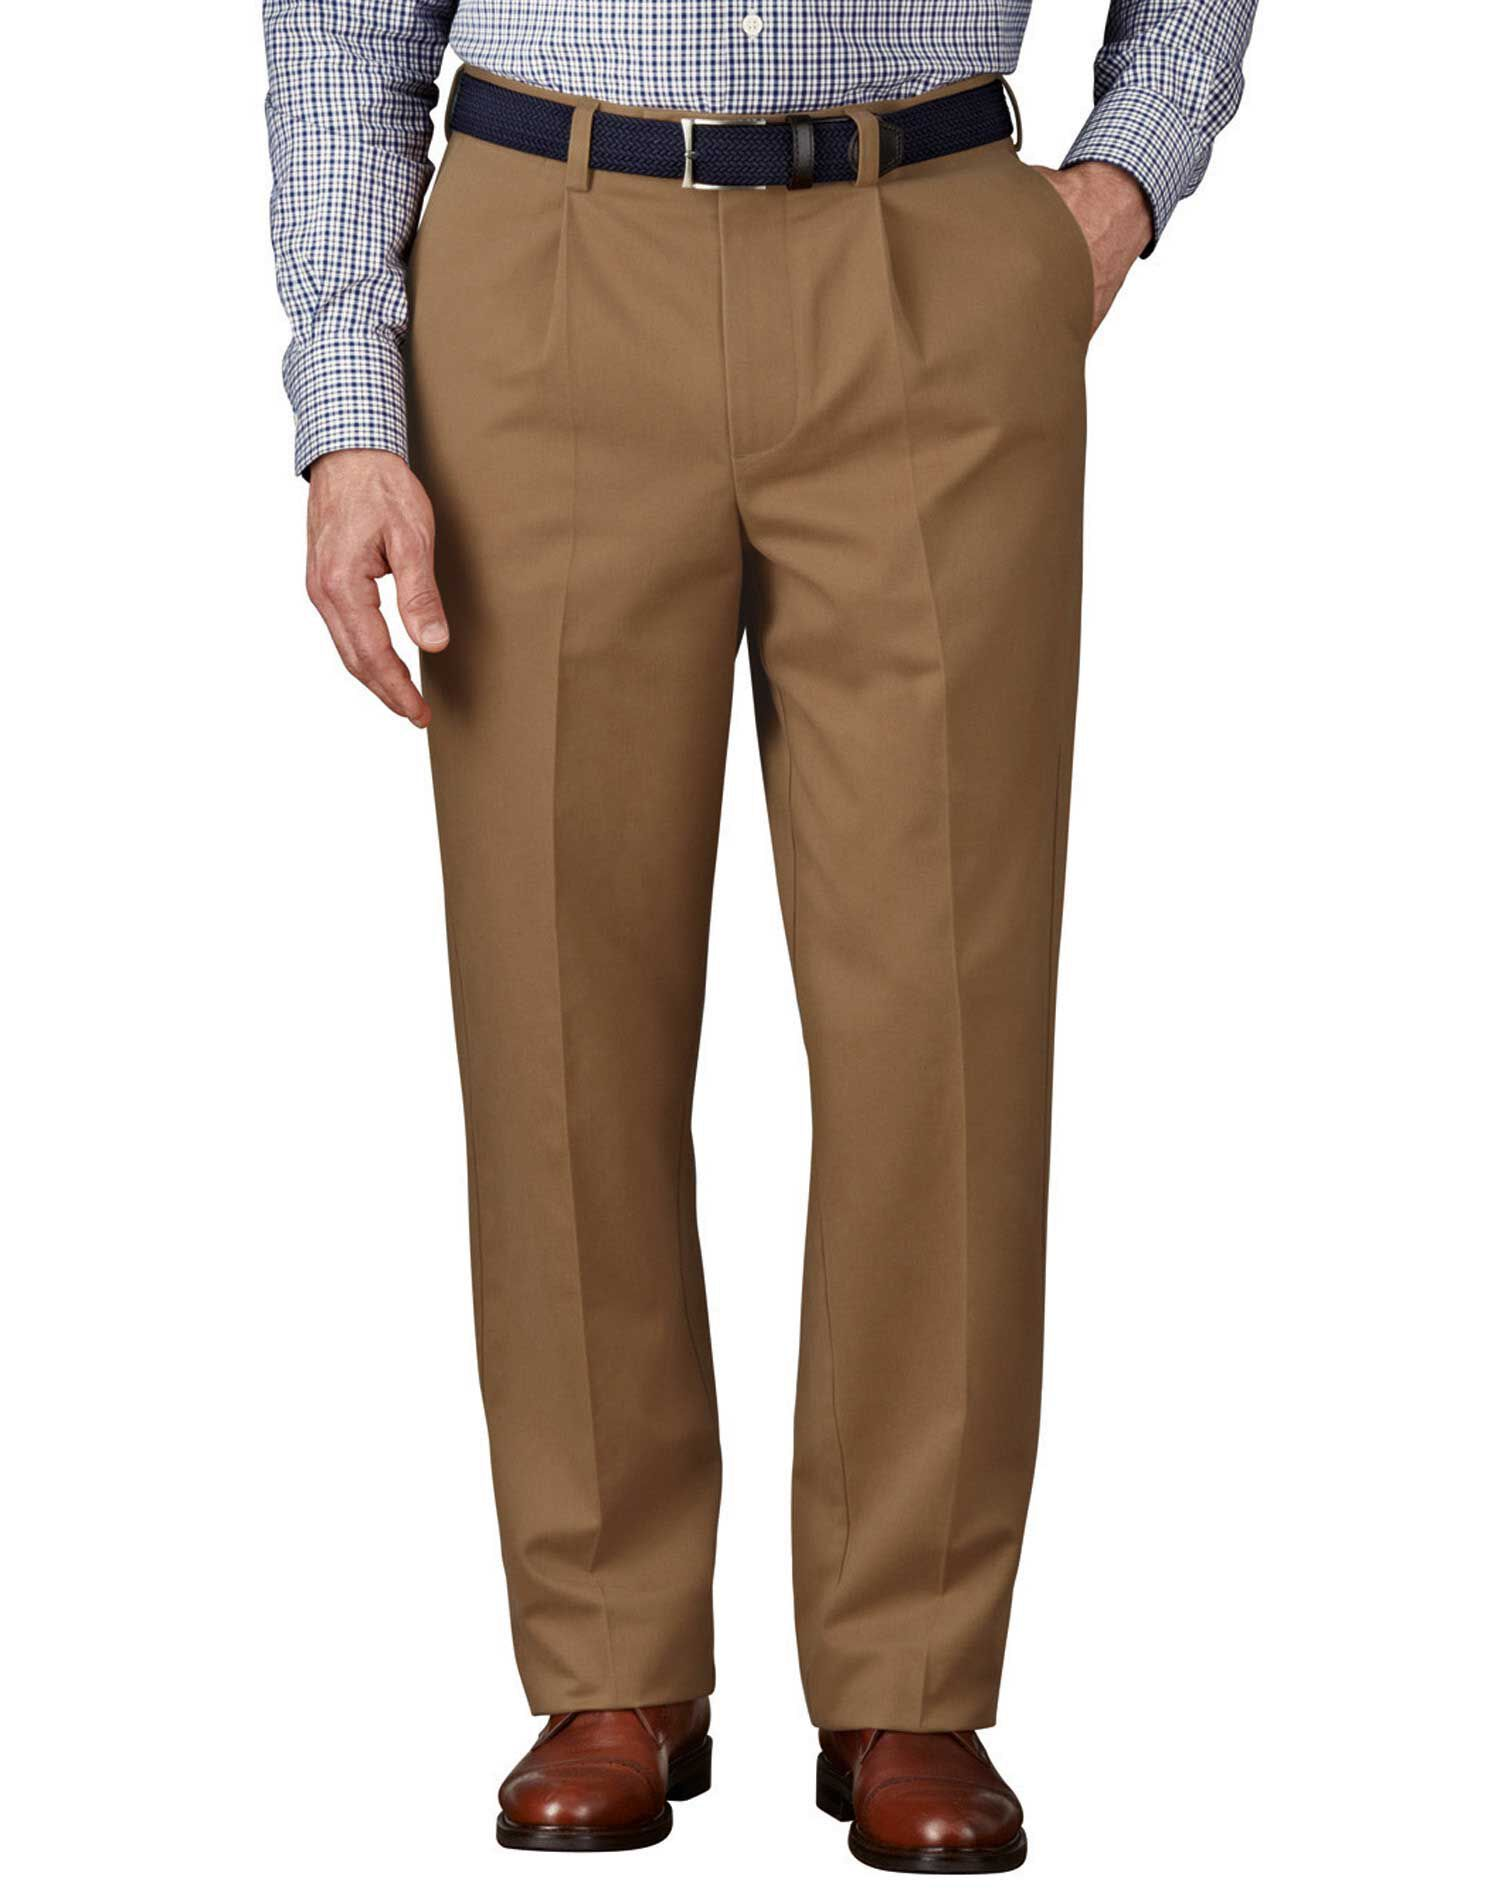 Camel Classic Fit Single Pleat Non-Iron Cotton Chino Trousers Size W42 L29 by Charles Tyrwhitt